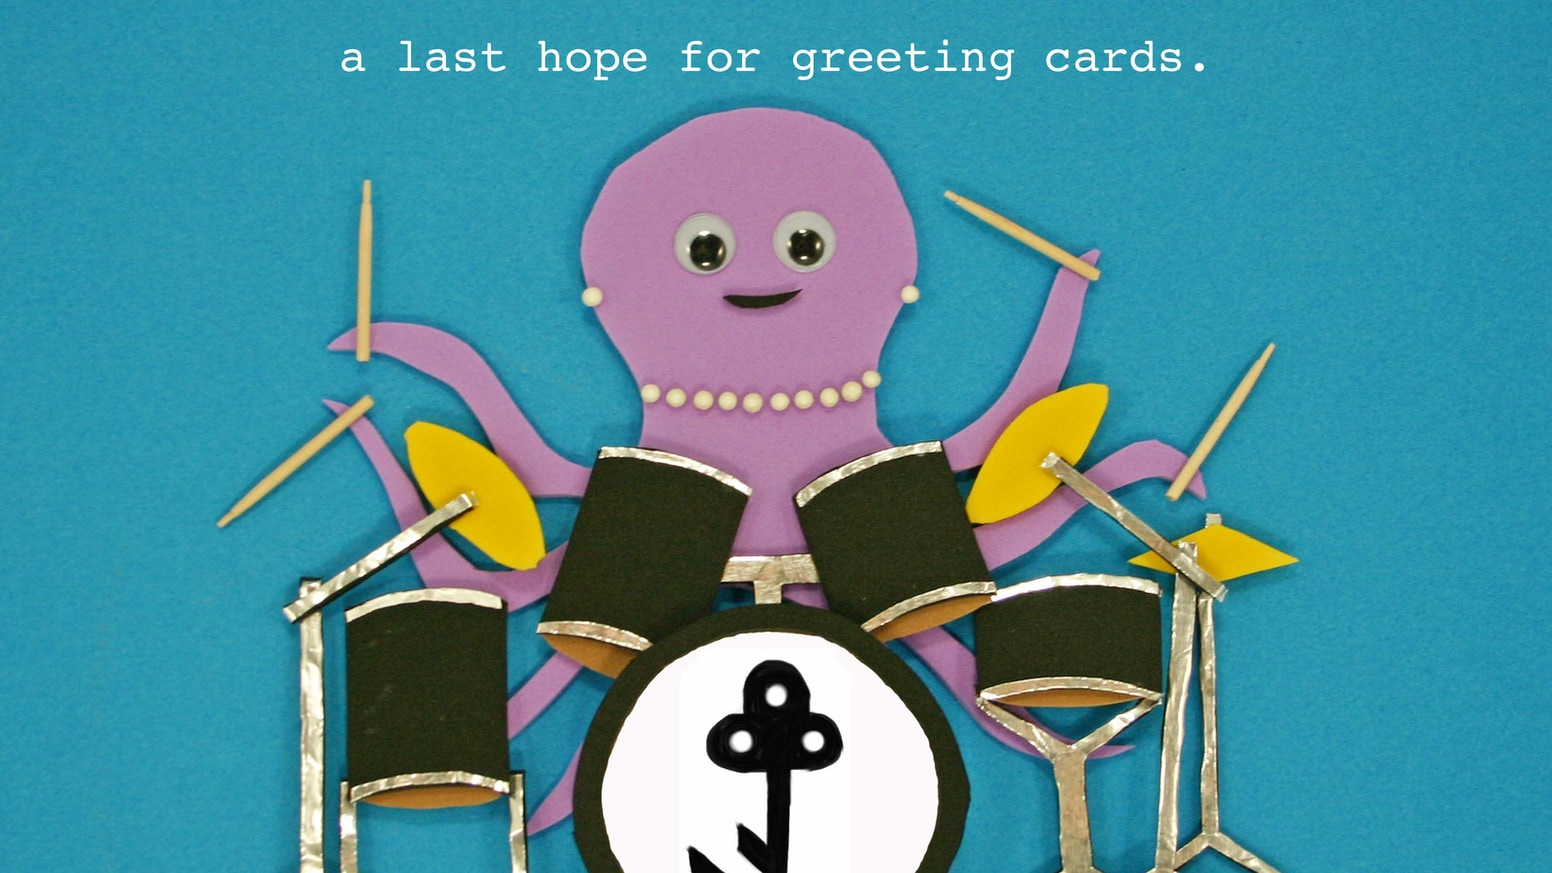 A Last Hope For Greeting Cards From Lowkey Greetings By Christopher